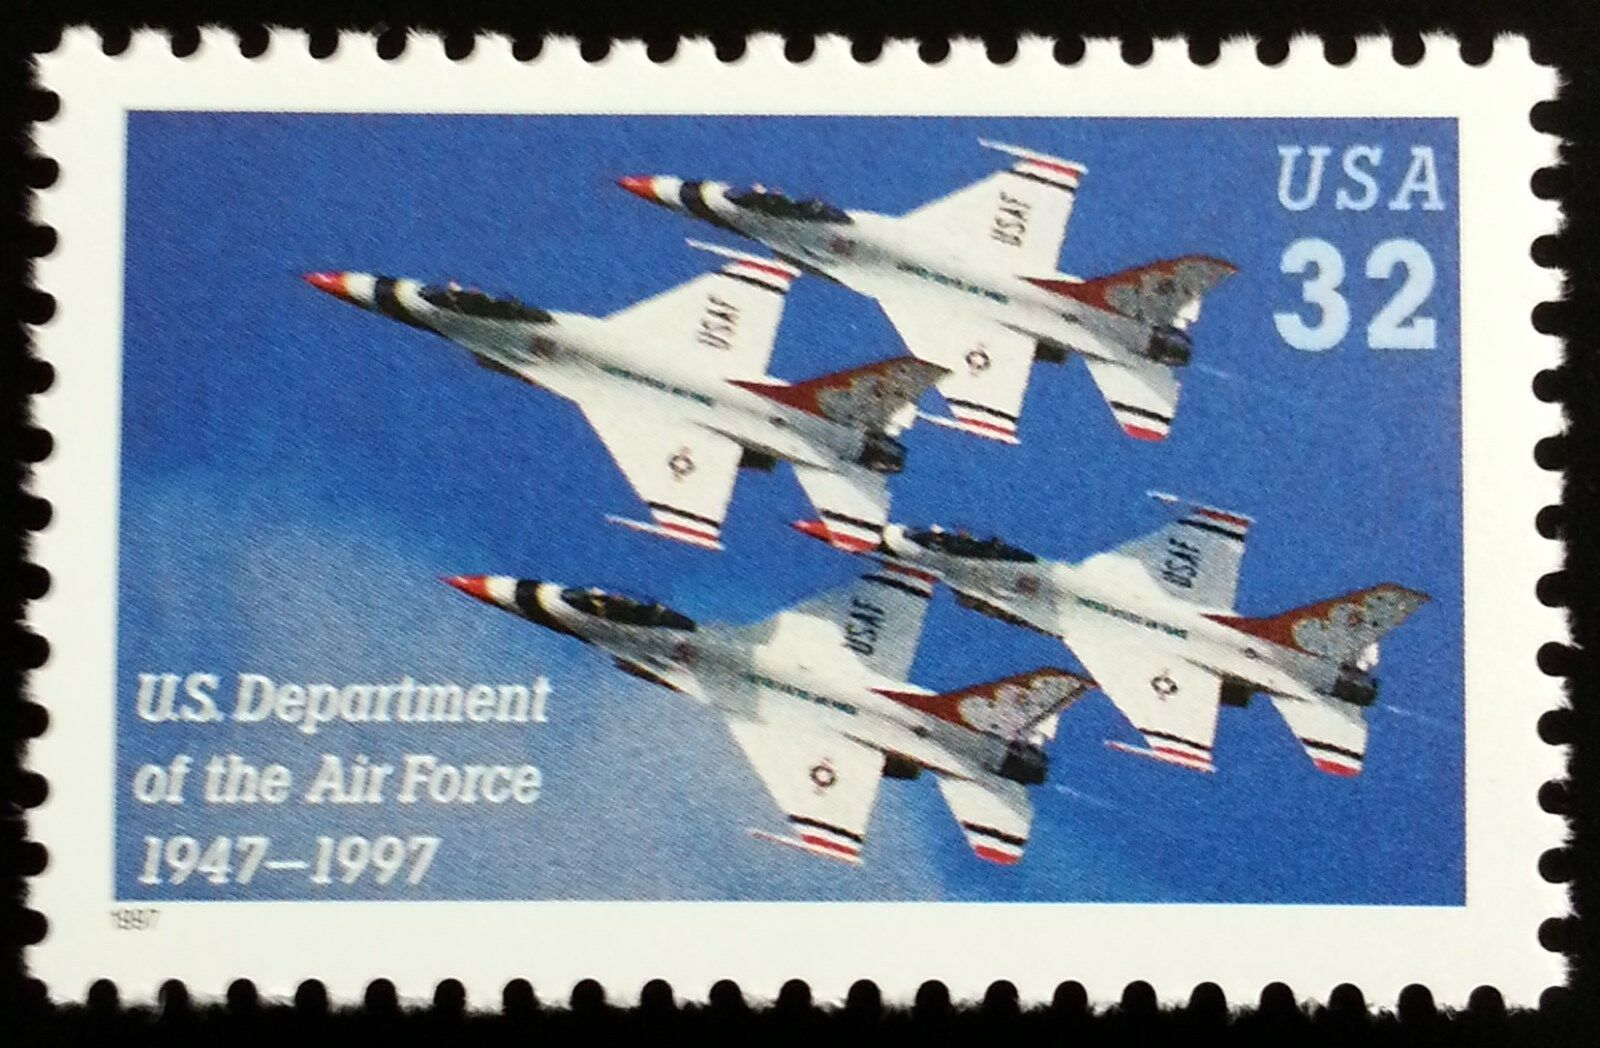 1997 32c Department of the Air Force, 50th Anniversary